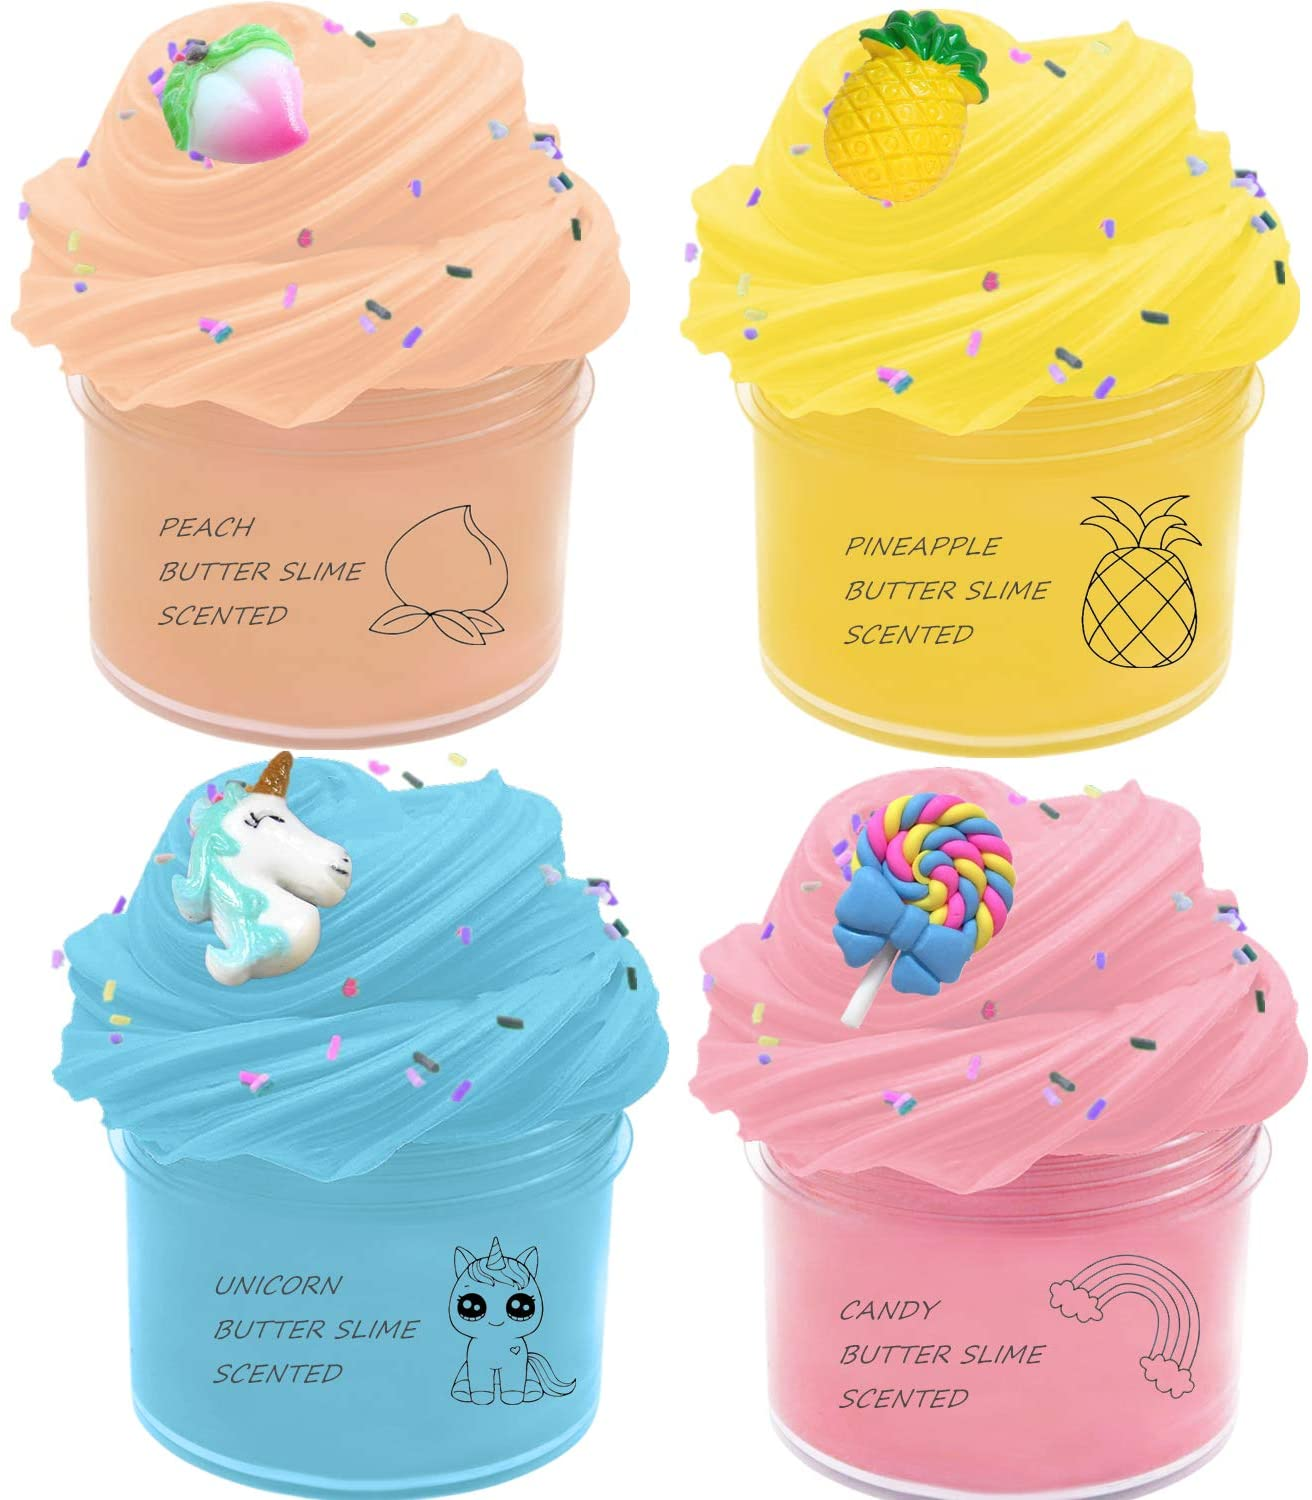 Q-BABY 4 Pack Fluffy Slime Scented Unicorn Butter Slime Stretchy Non-Sticky Cotton Slime, Stress Relief Toy Kids Art Crafts Gift for Boys Girls